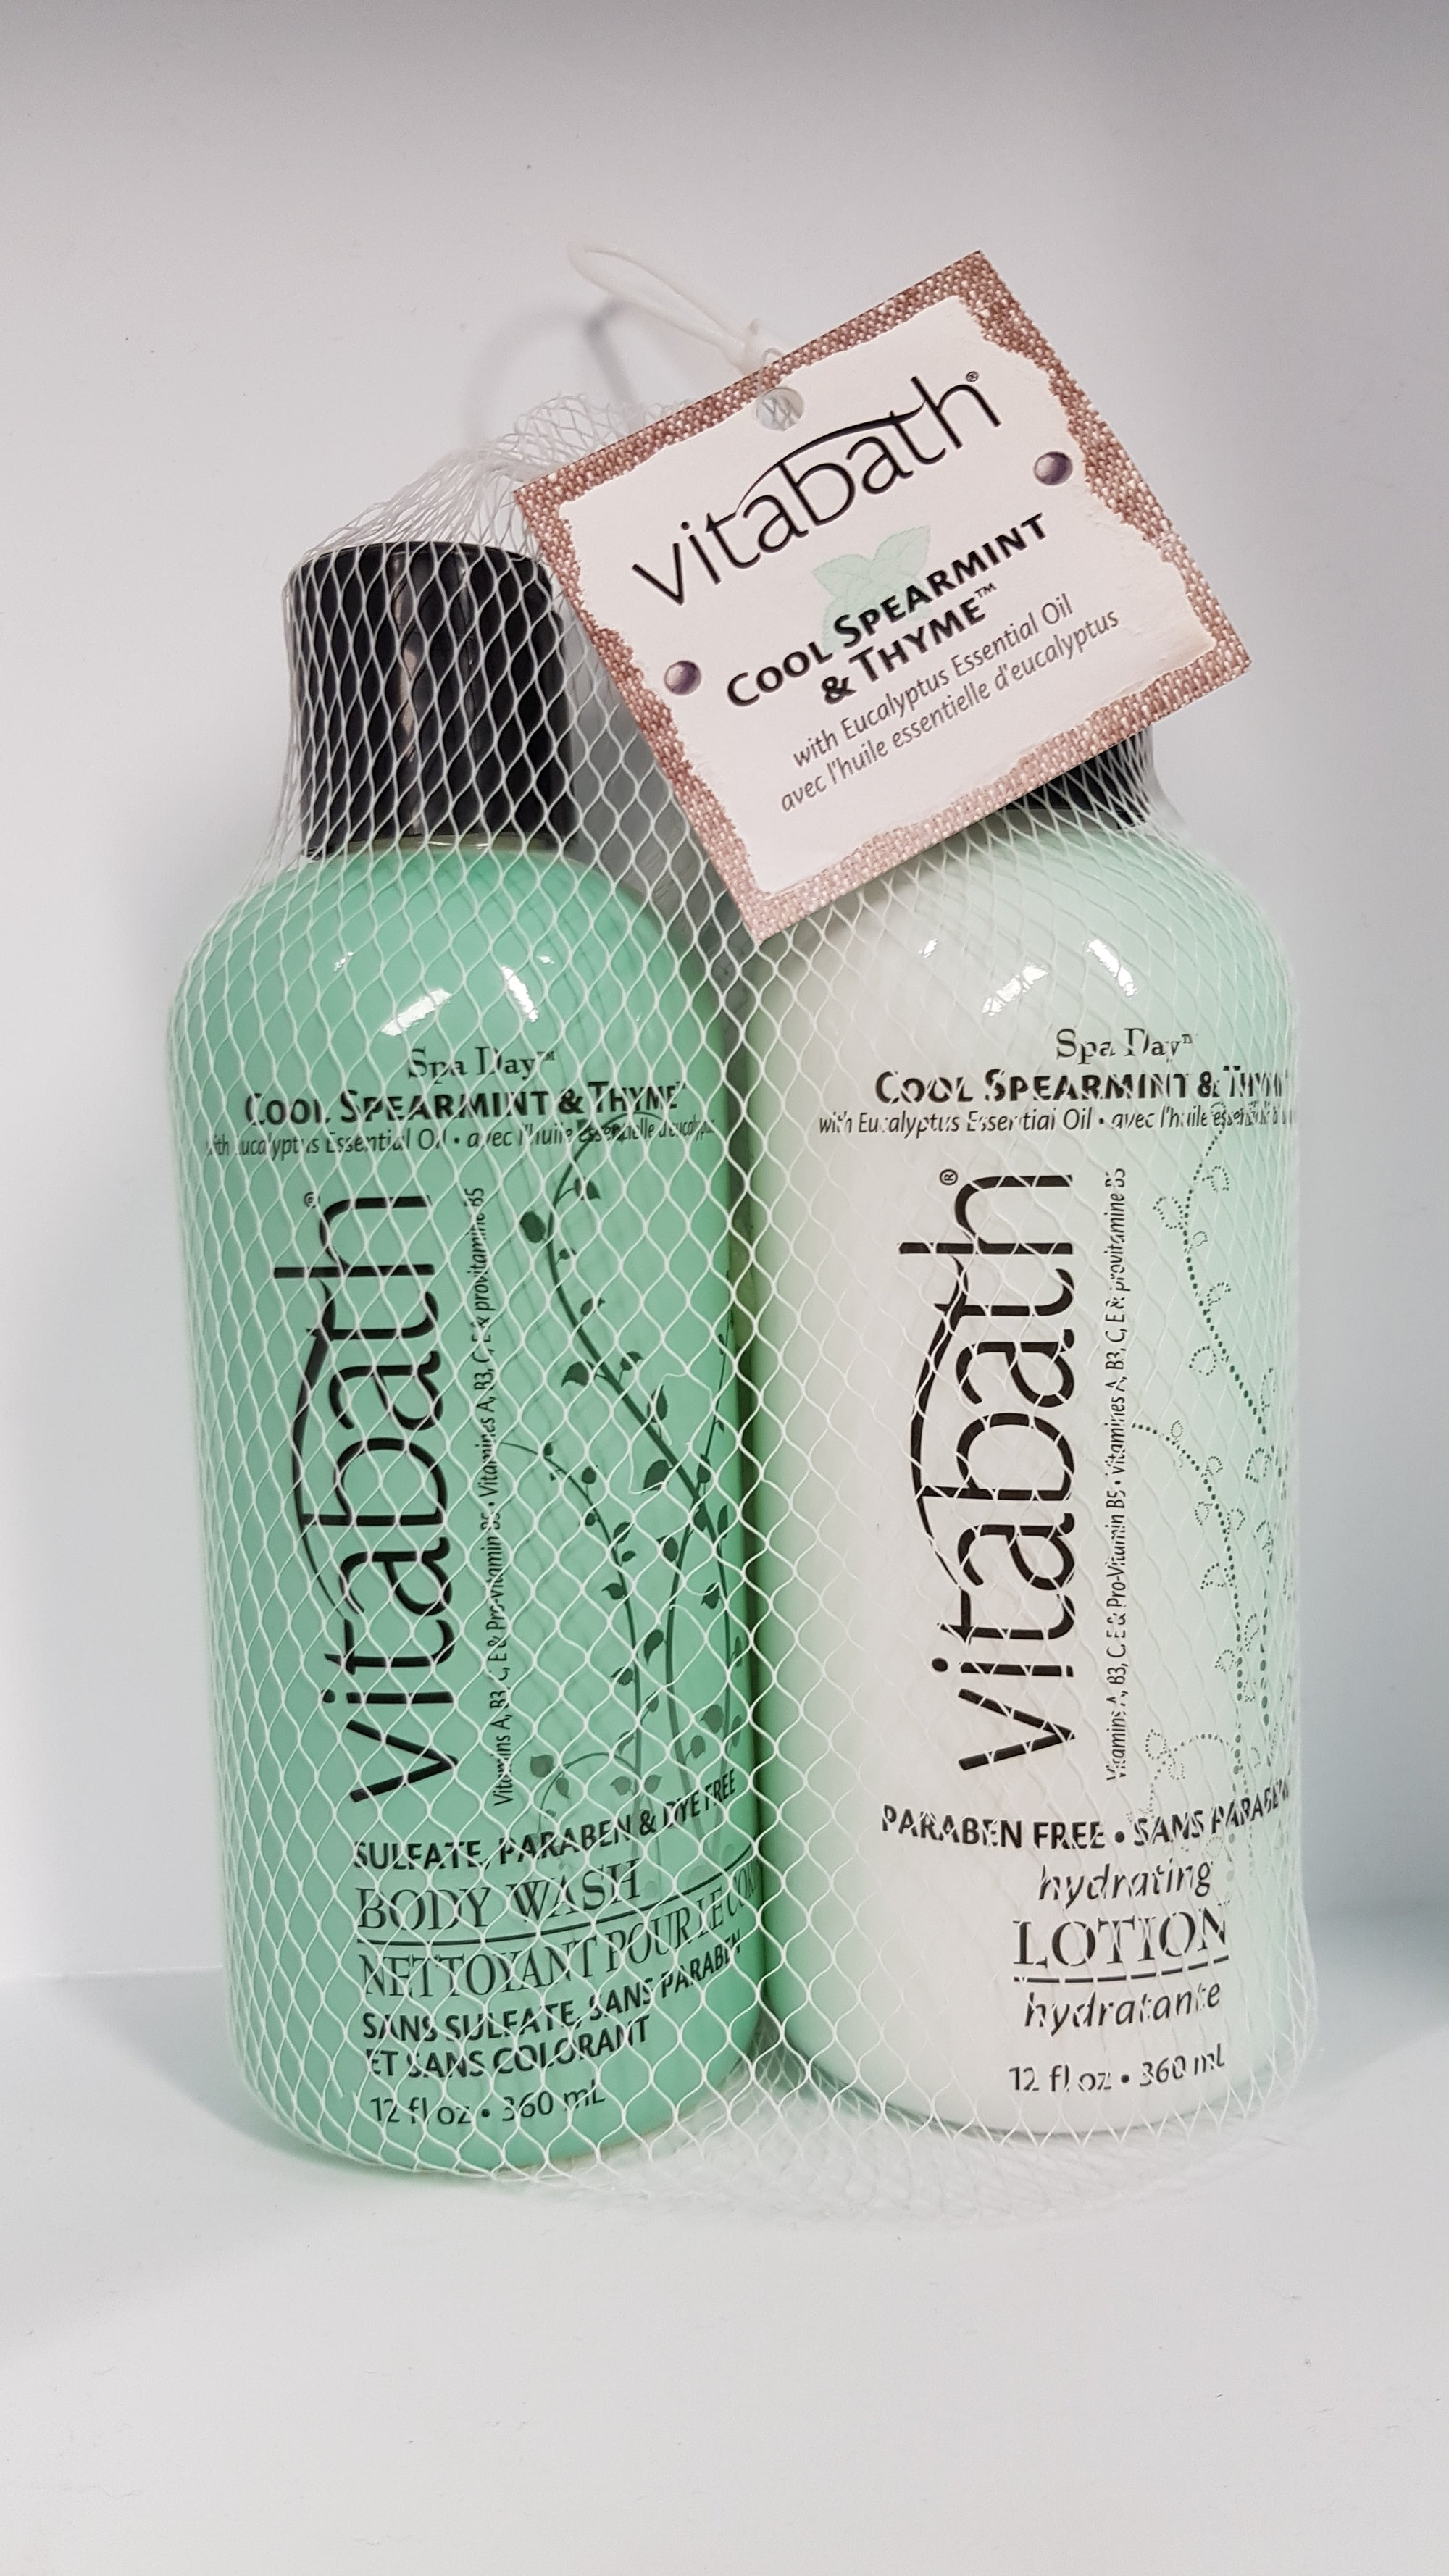 Vitabath Cool Spearmint & Thyme Body Wash and Lotion 2pc Set